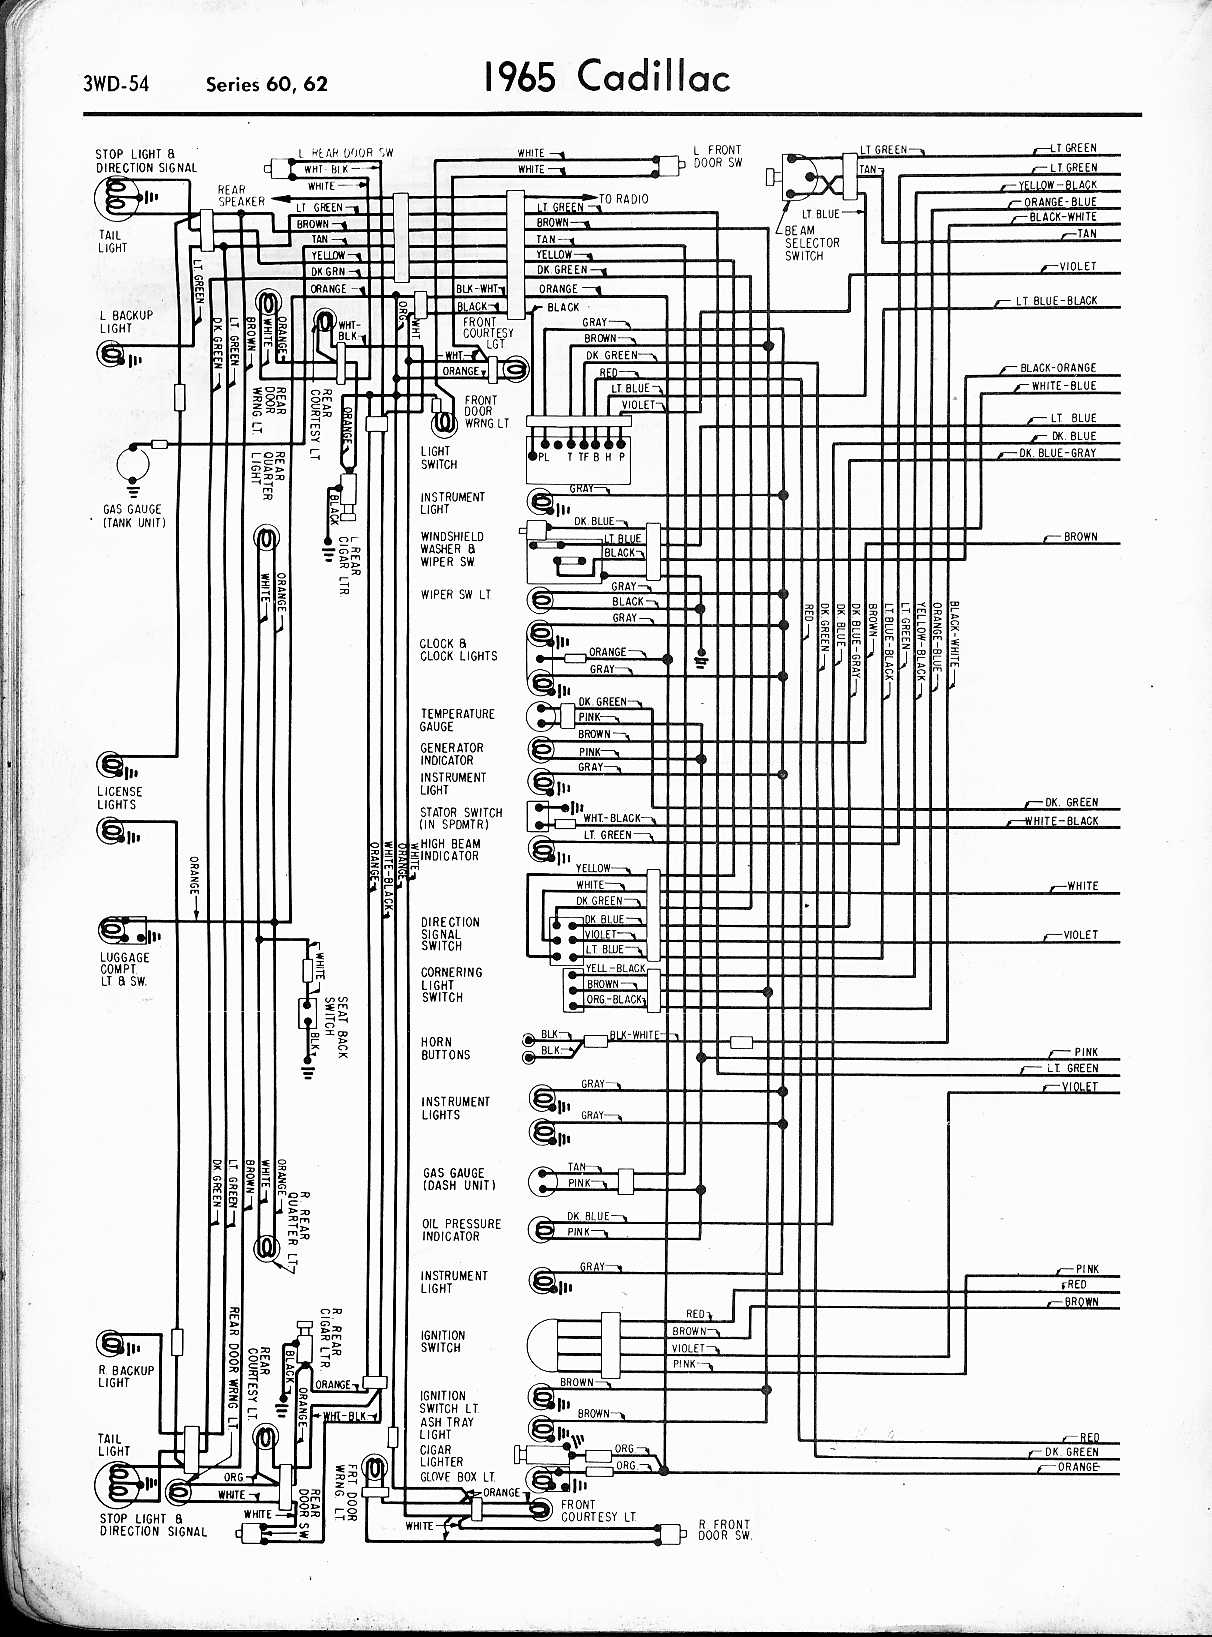 hight resolution of 1964 cadillac deville wiring diagrams wiring diagram pagecadillac wiring diagrams 1957 1965 1964 cadillac deville wiring